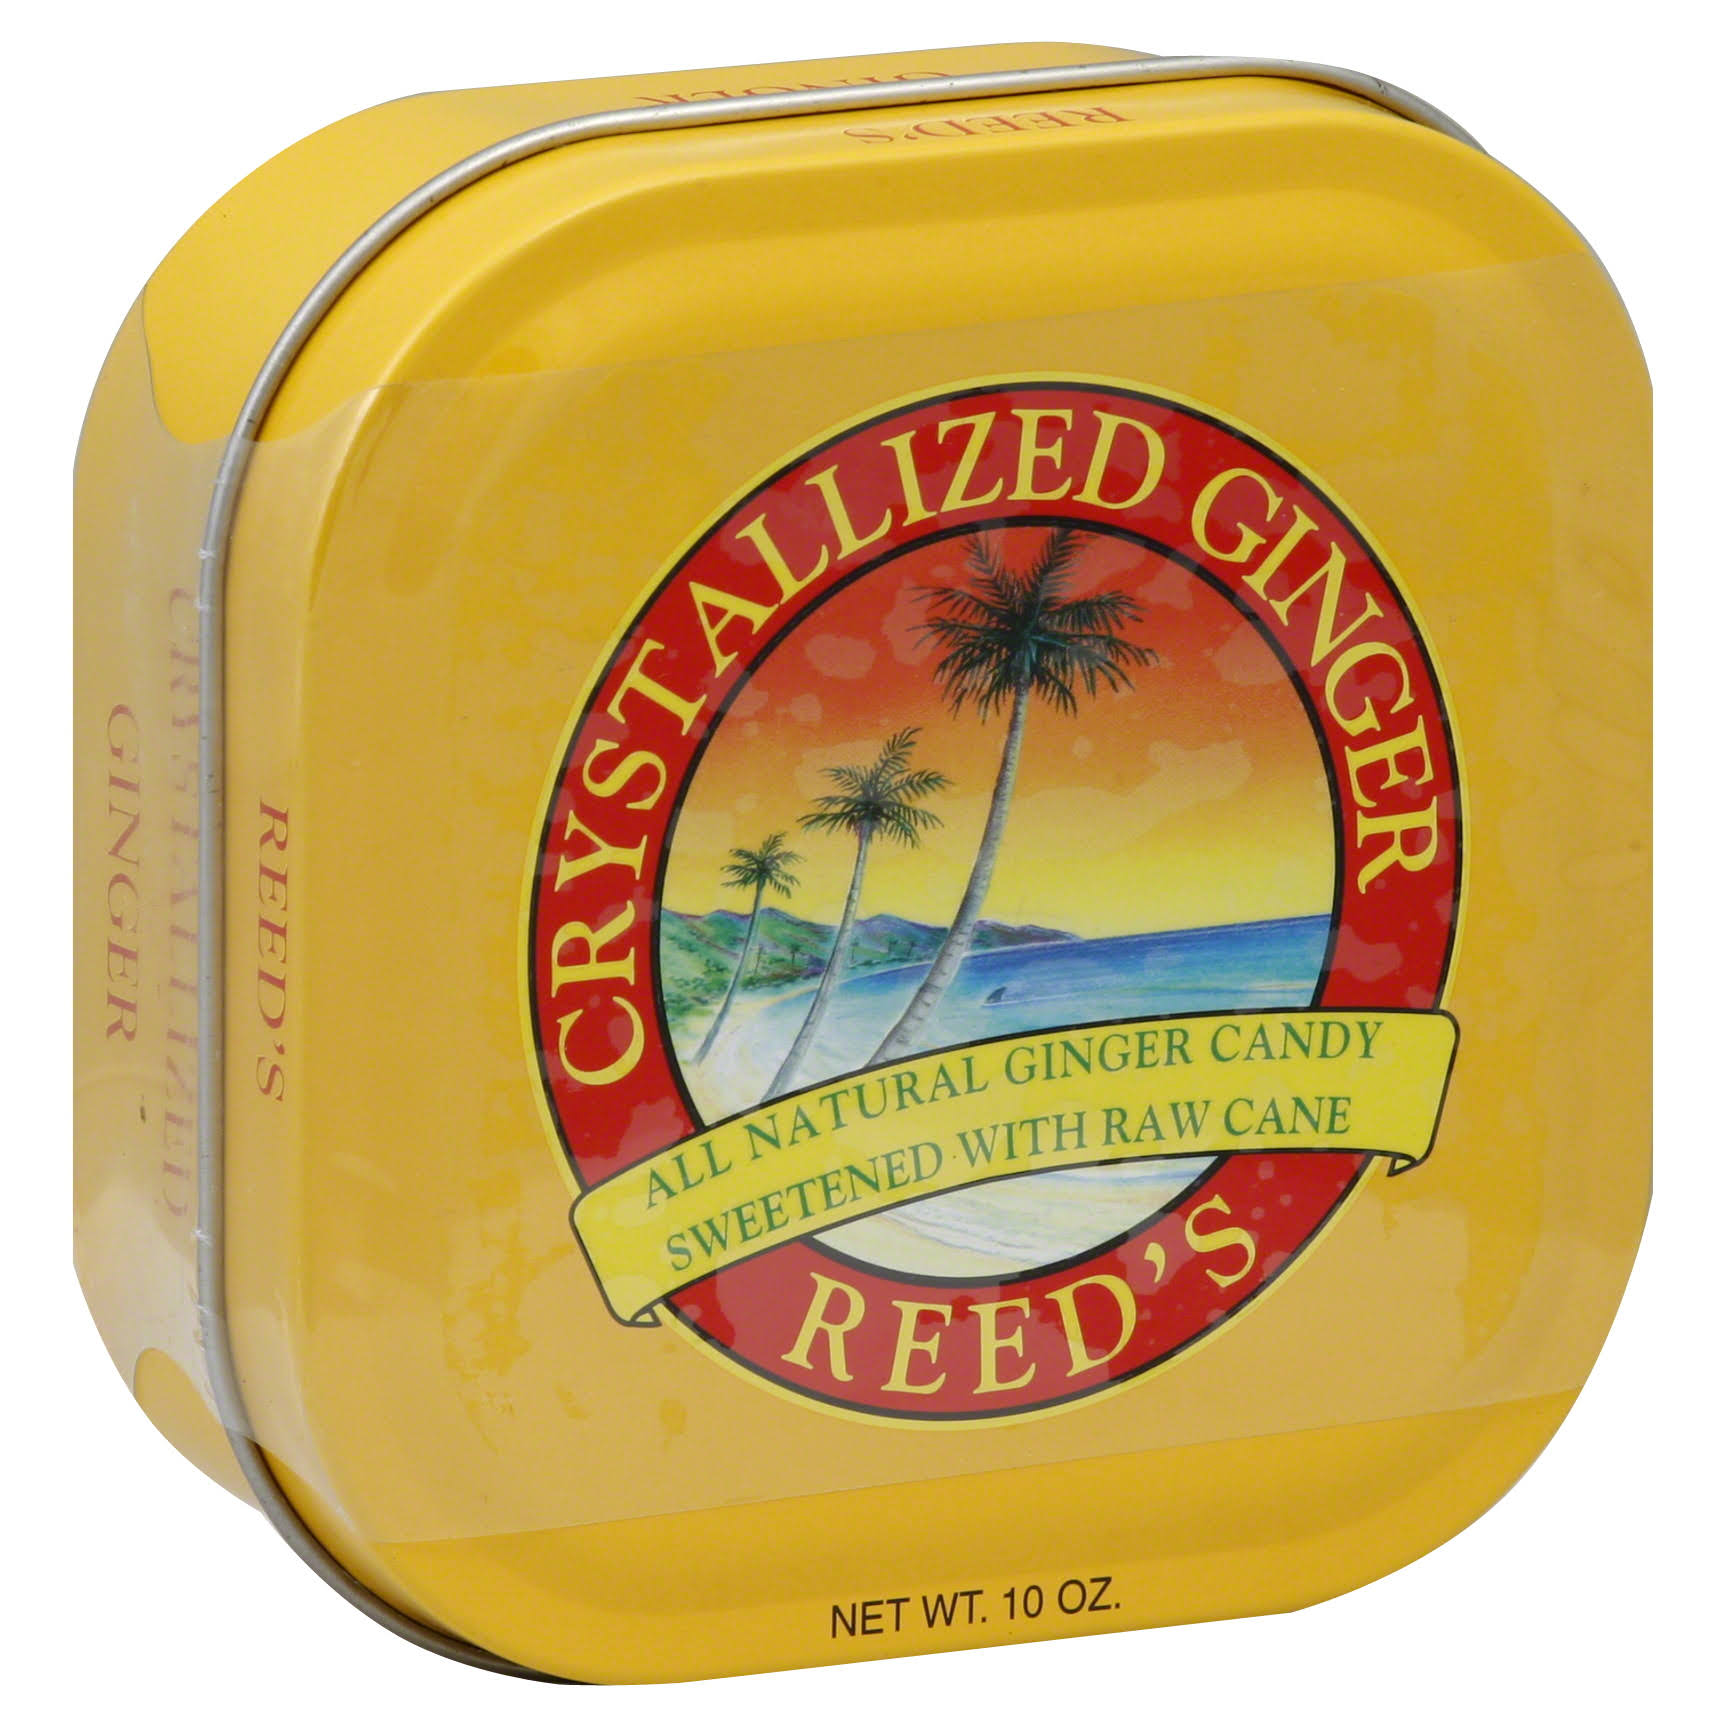 Reeds Crystallized Ginger Candy